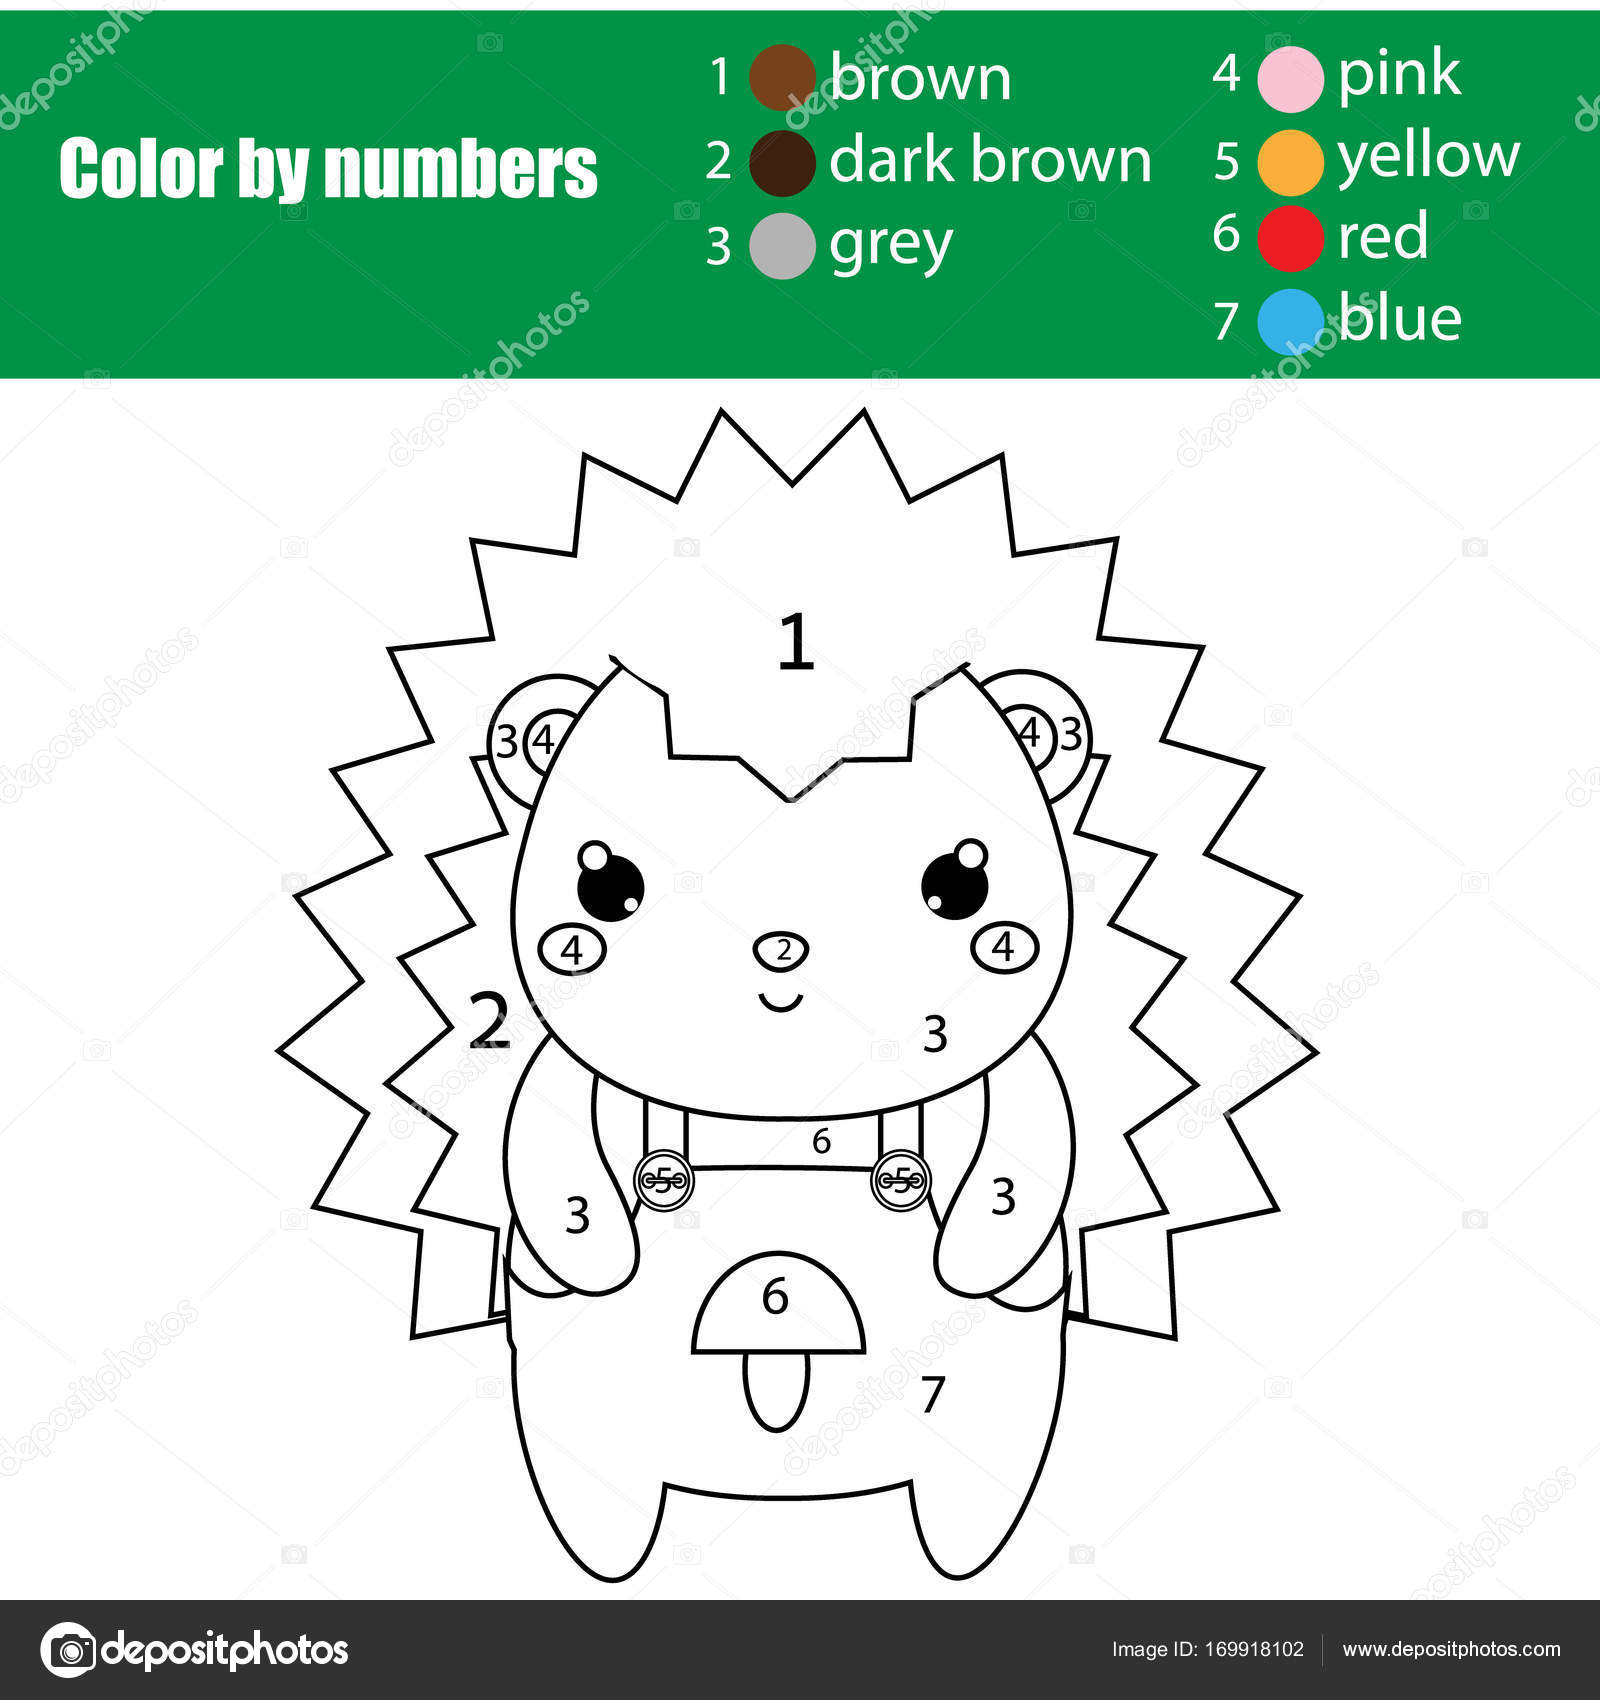 coloring page with cute hedgehog color by numbers printable activity - Number 50 Coloring Page